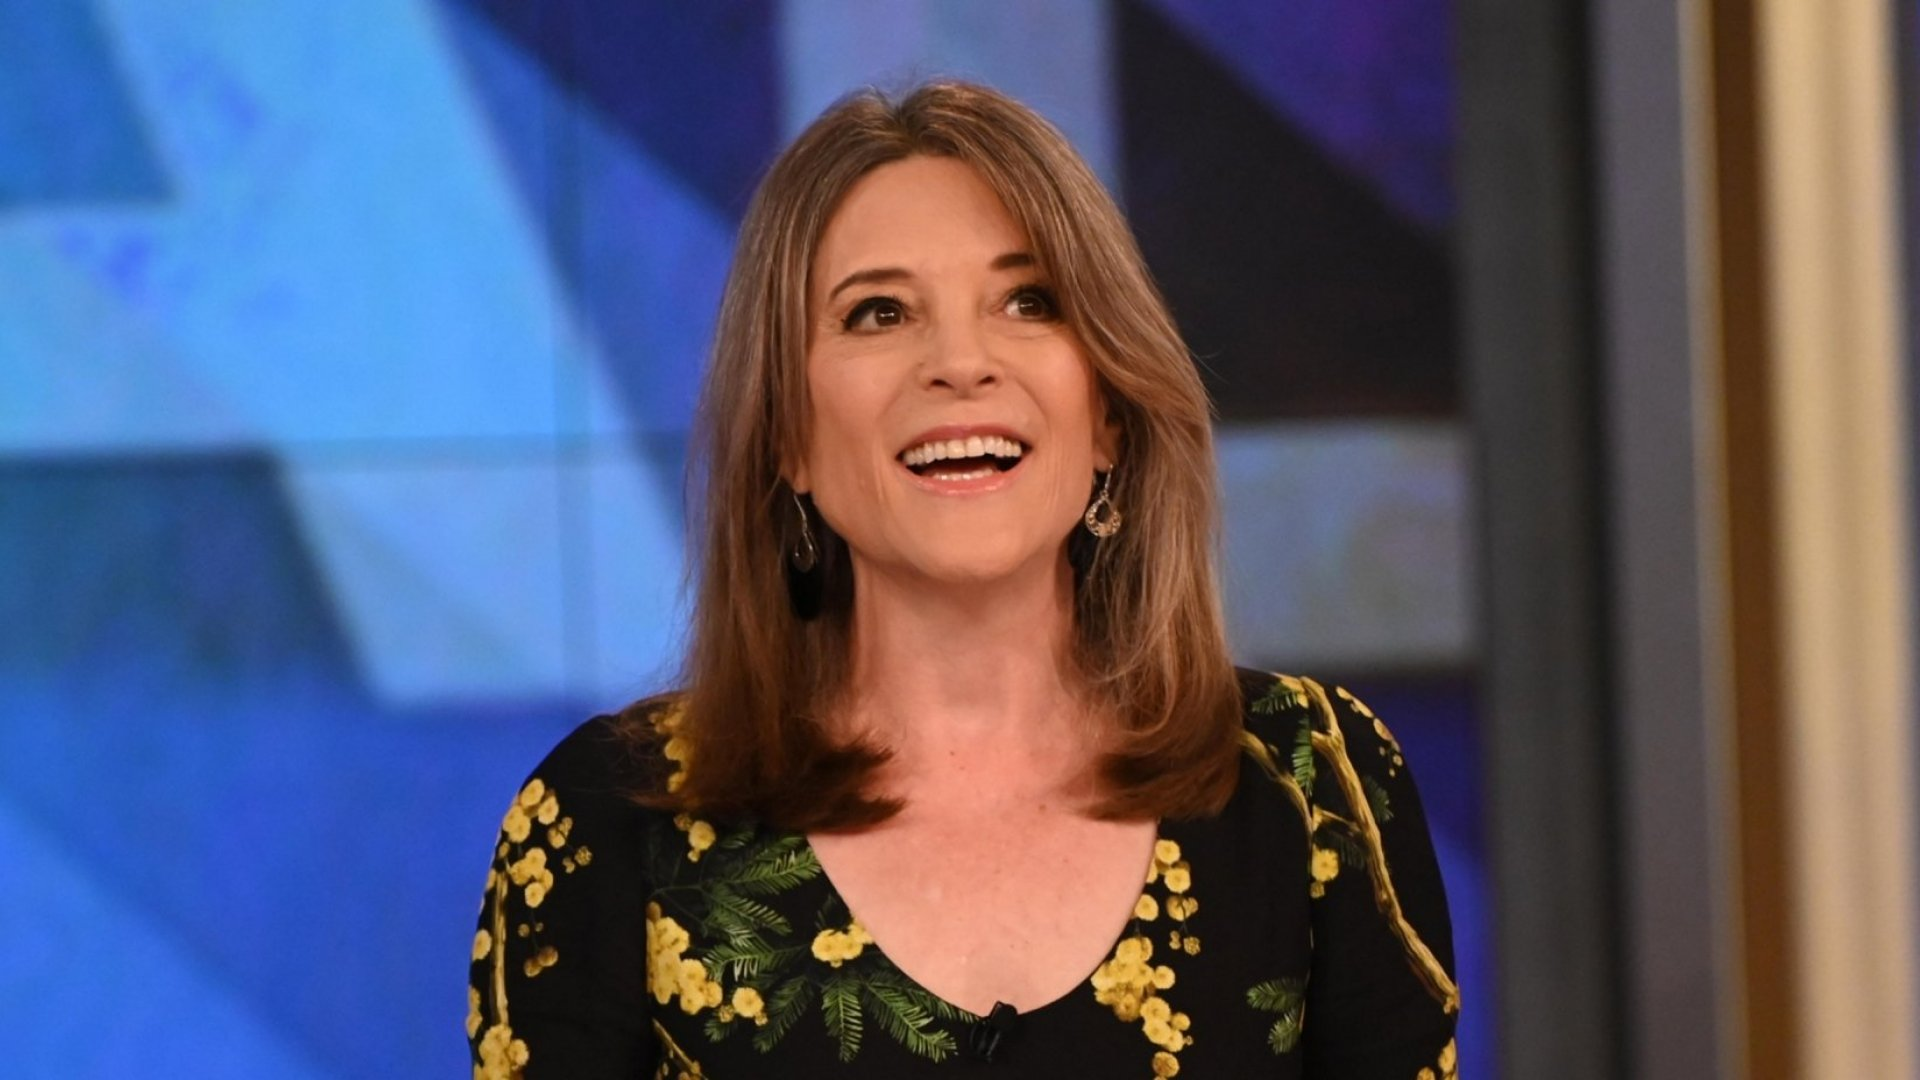 17 Marianne Williamson Quotes That Will Inspire You to Reach for More